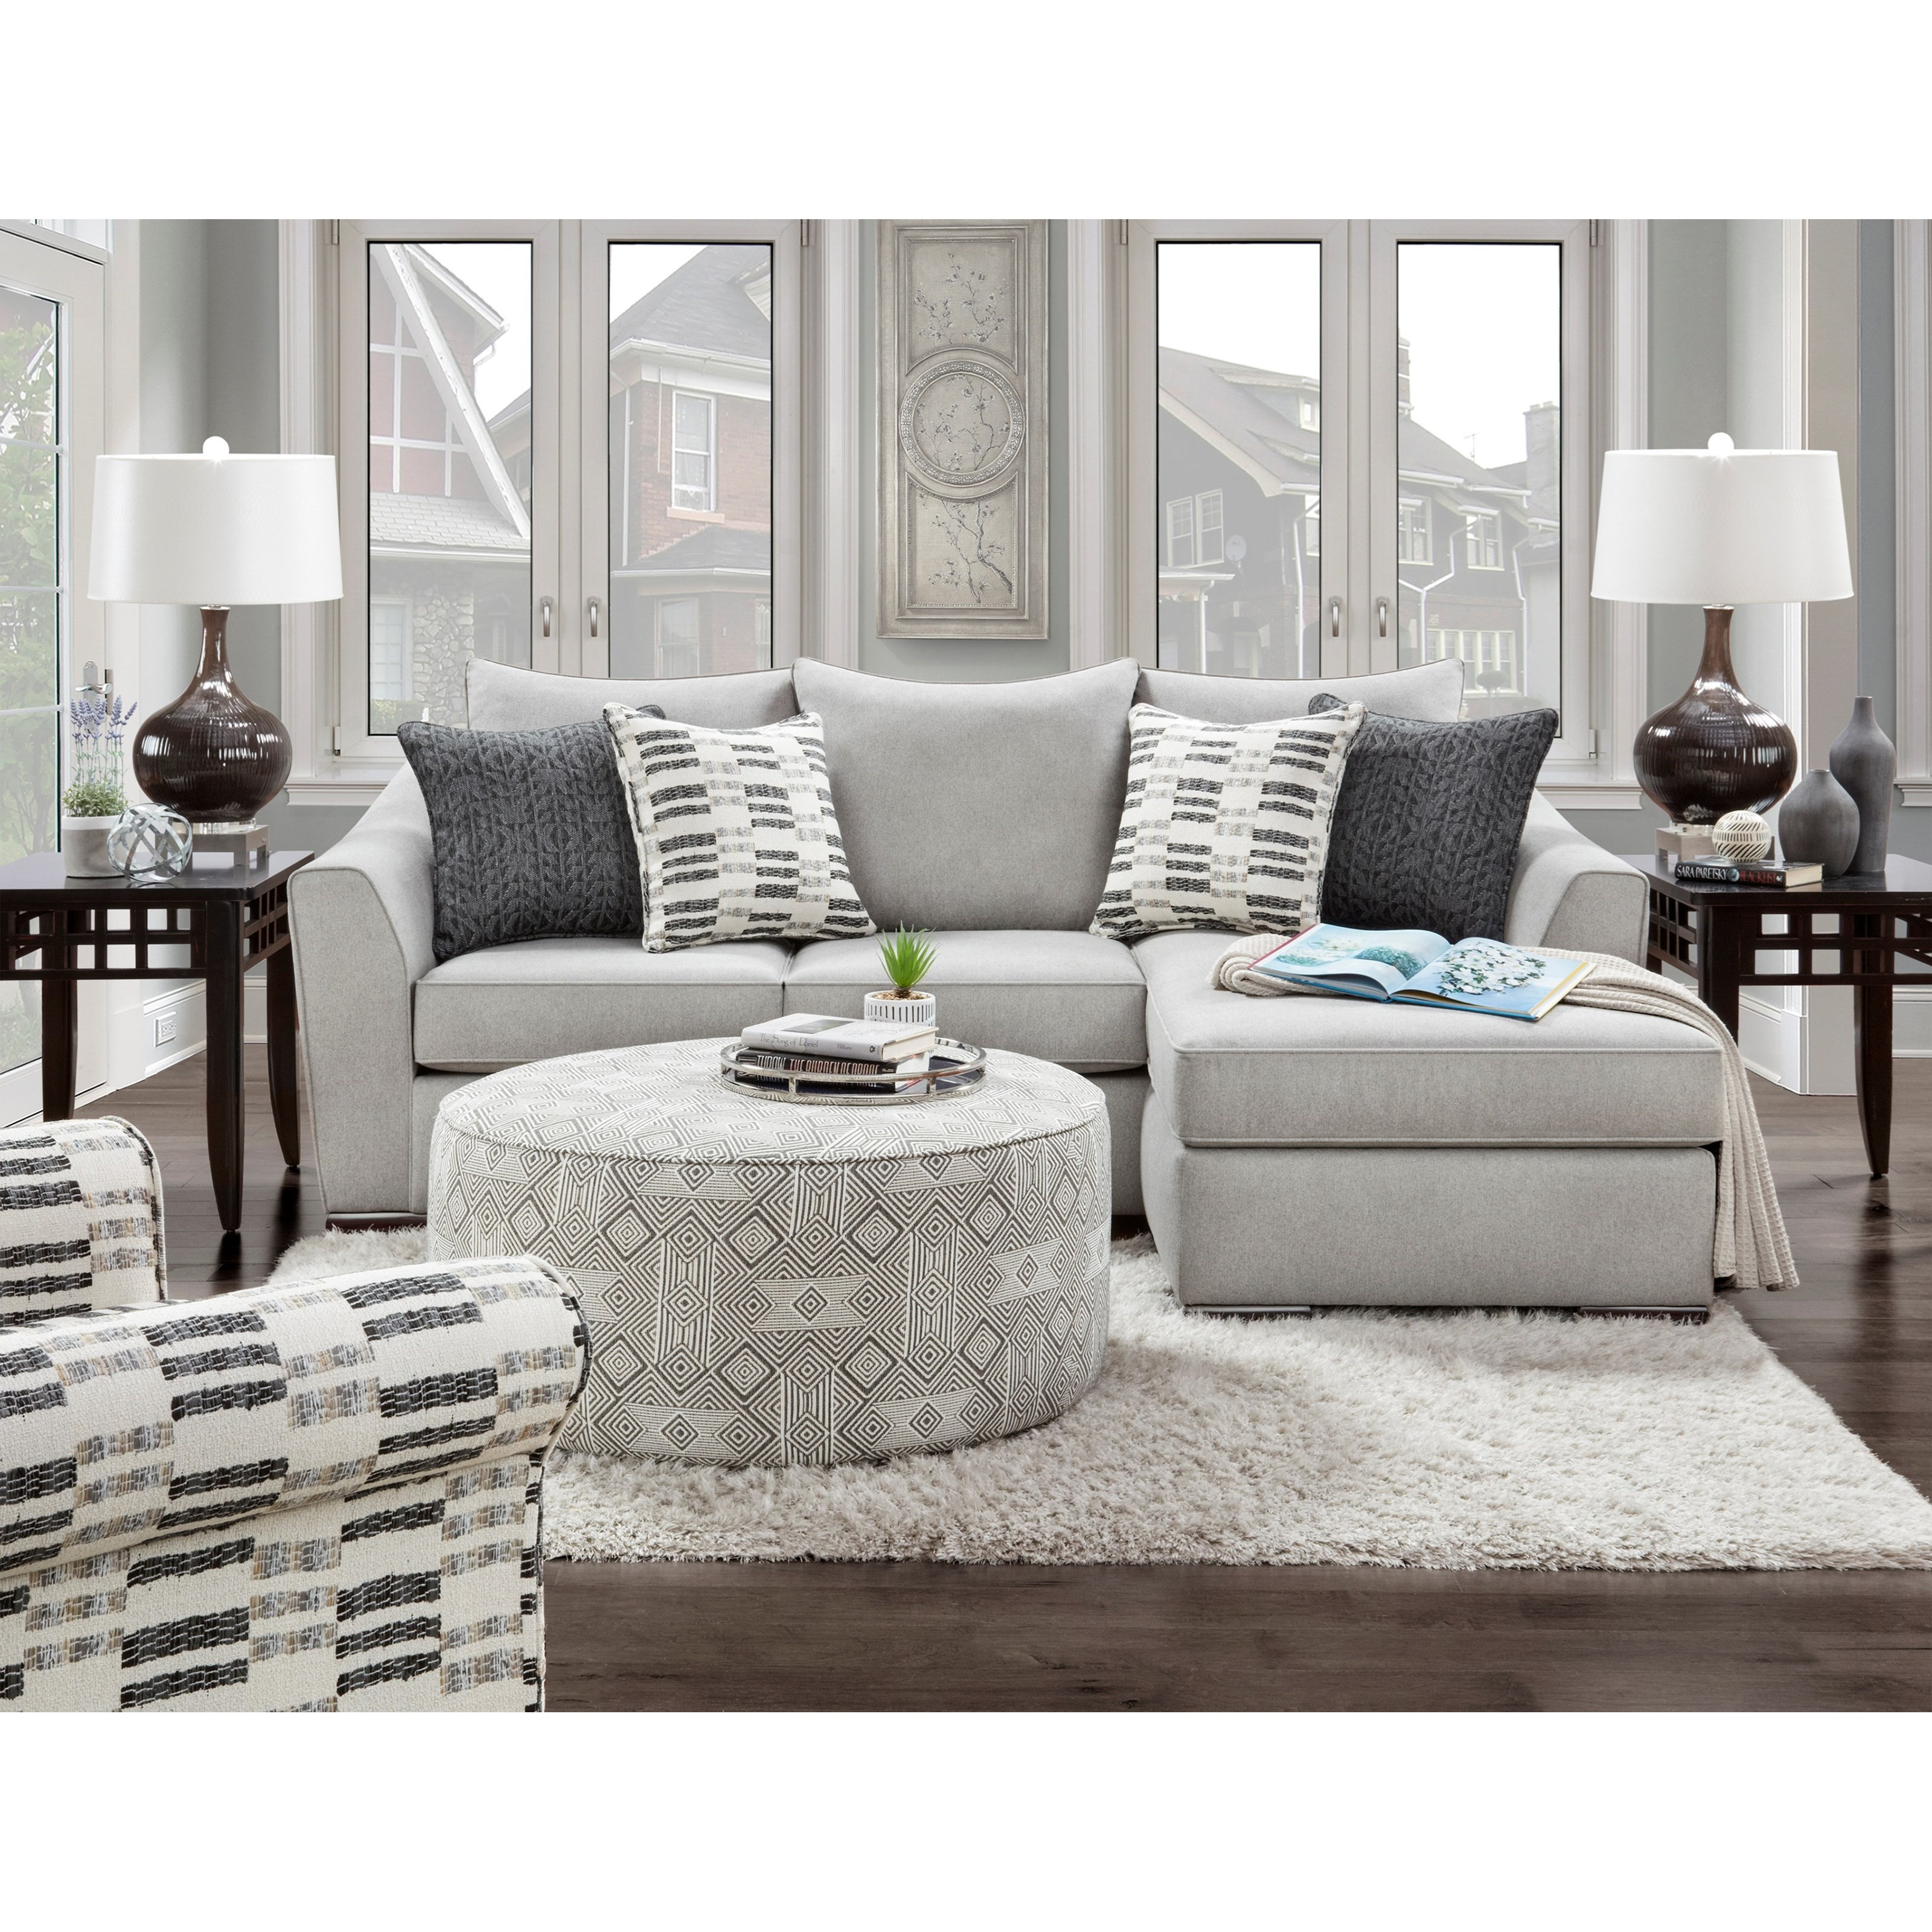 Popstitch Living Room Group by Fusion Furniture at Standard Furniture